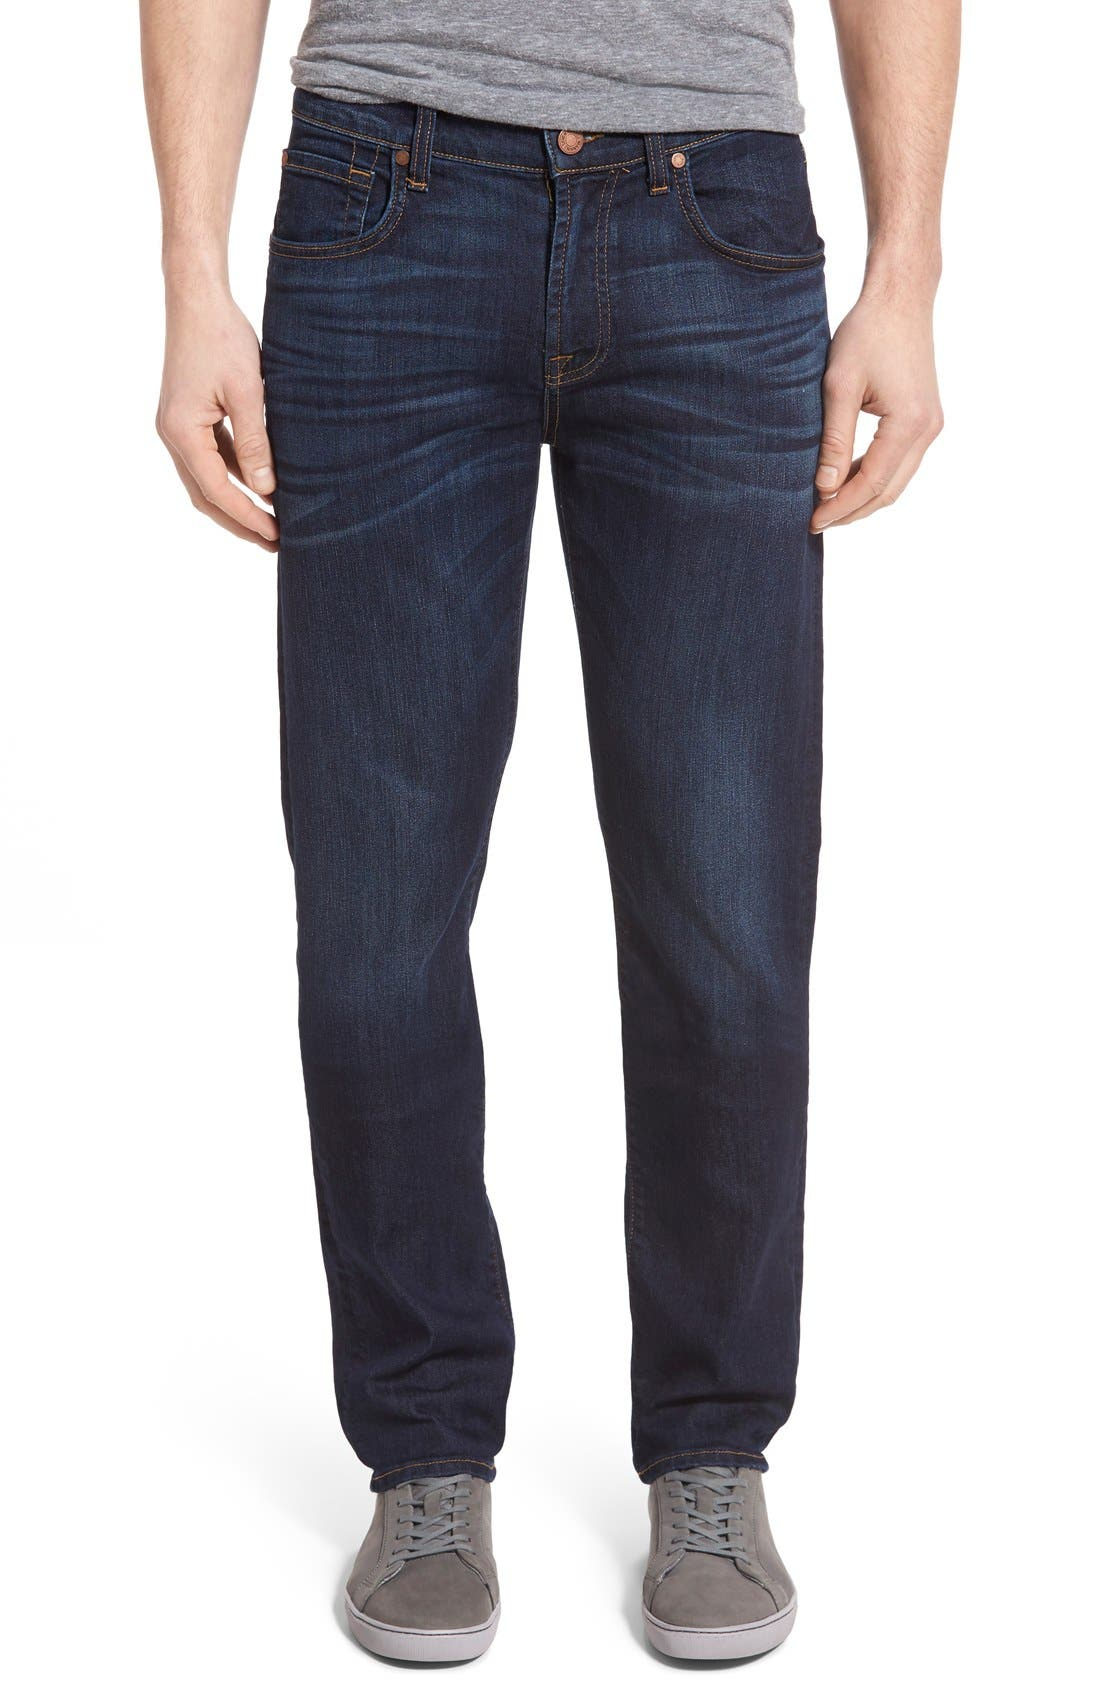 7 FOR ALL MANKIND<SUP>®</SUP>, The Straight Airweft Slim Straight Leg Jeans, Main thumbnail 1, color, 400